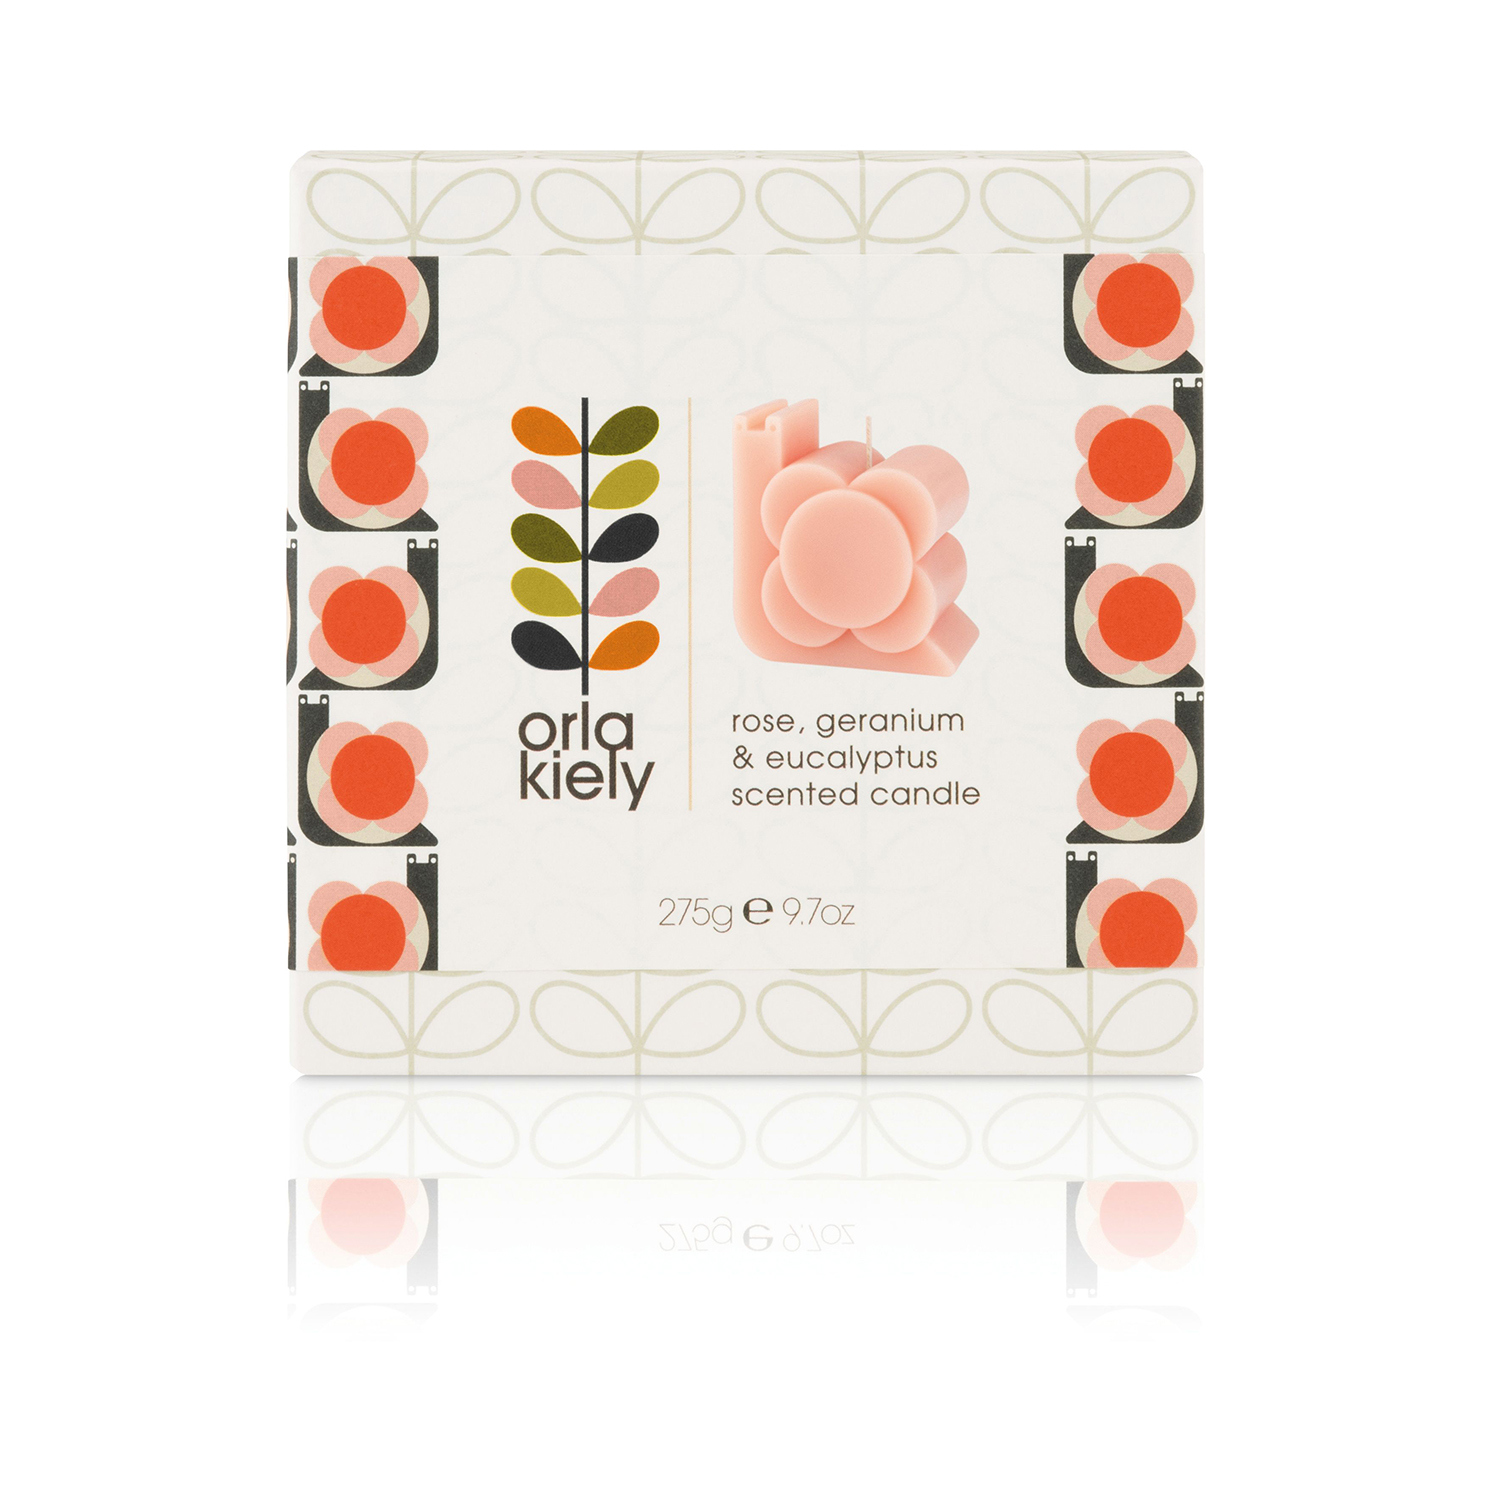 Orla Kiely – Rose, Geranium & Eucalyptus Snail Moulded Candle in Gift Box